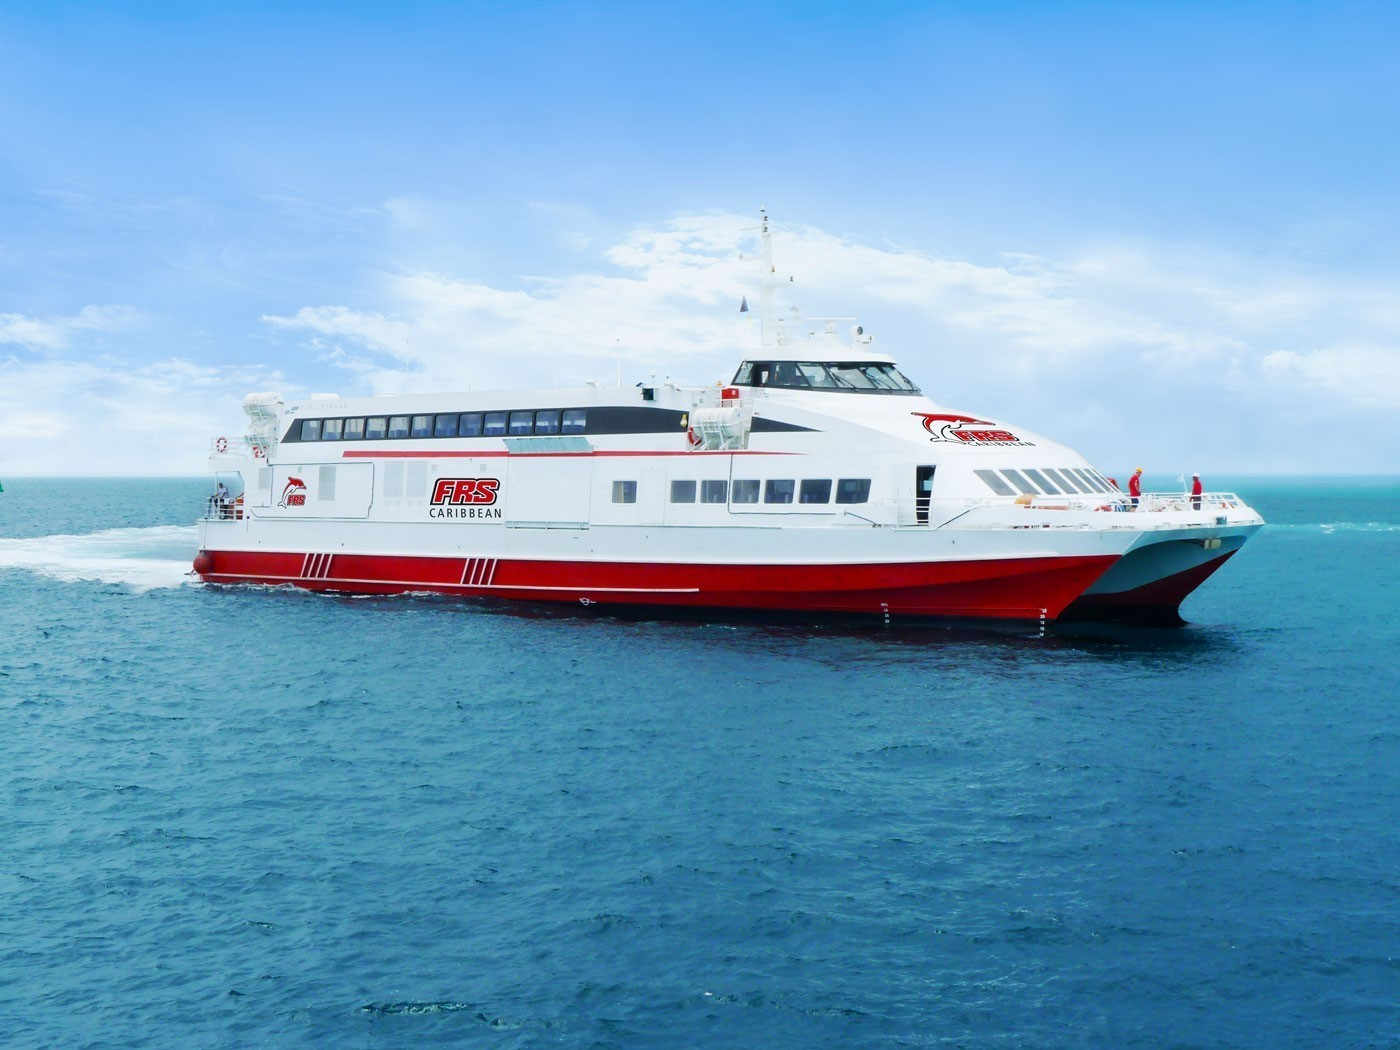 New Miami-to-Bimini ferry starts Friday - Sun Sentinel